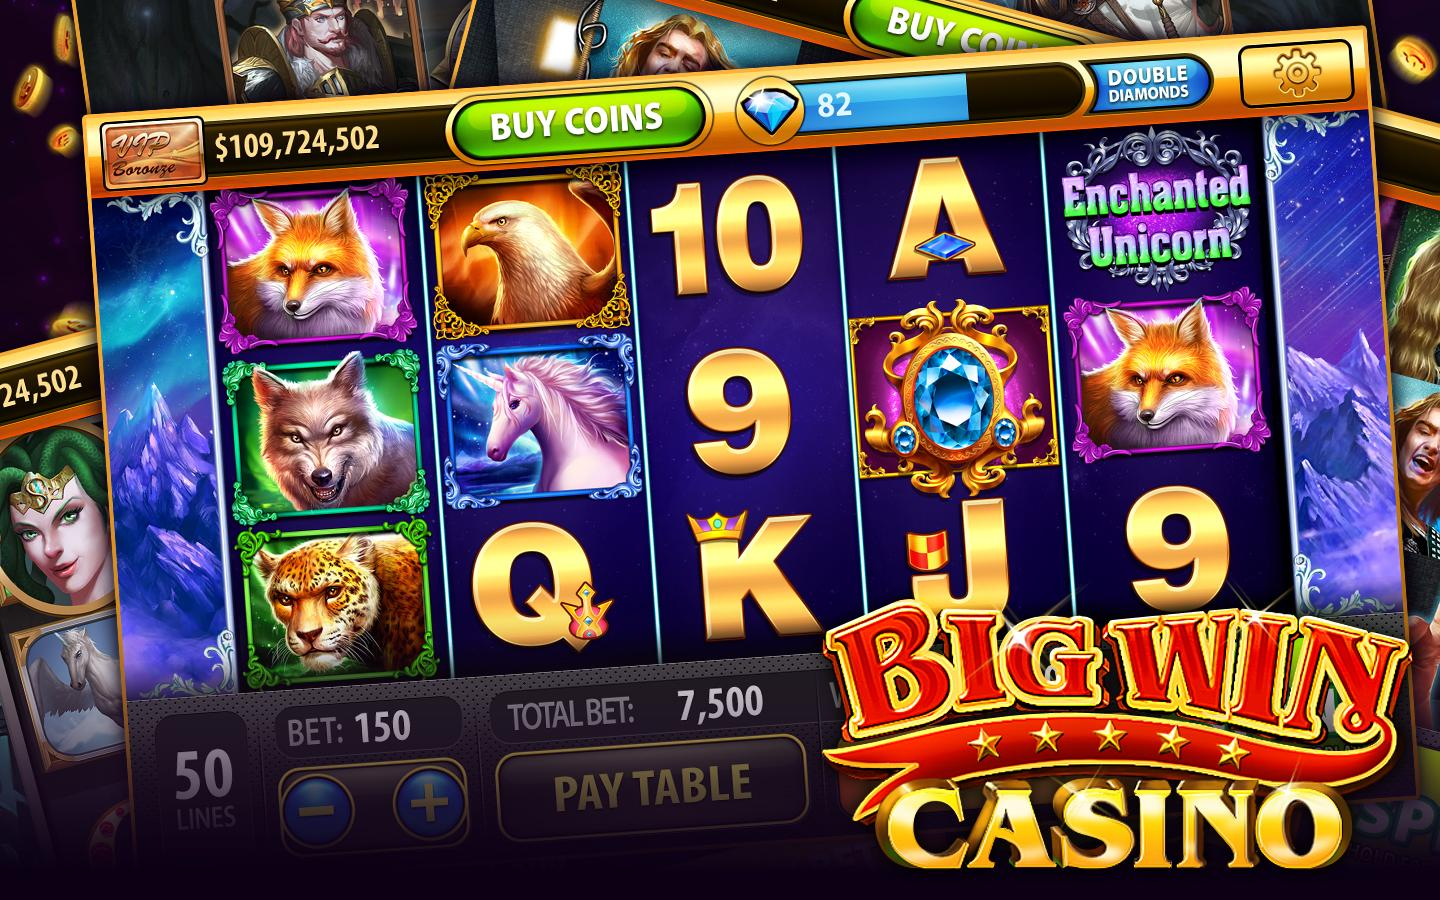 Gratis turnering casino 34621